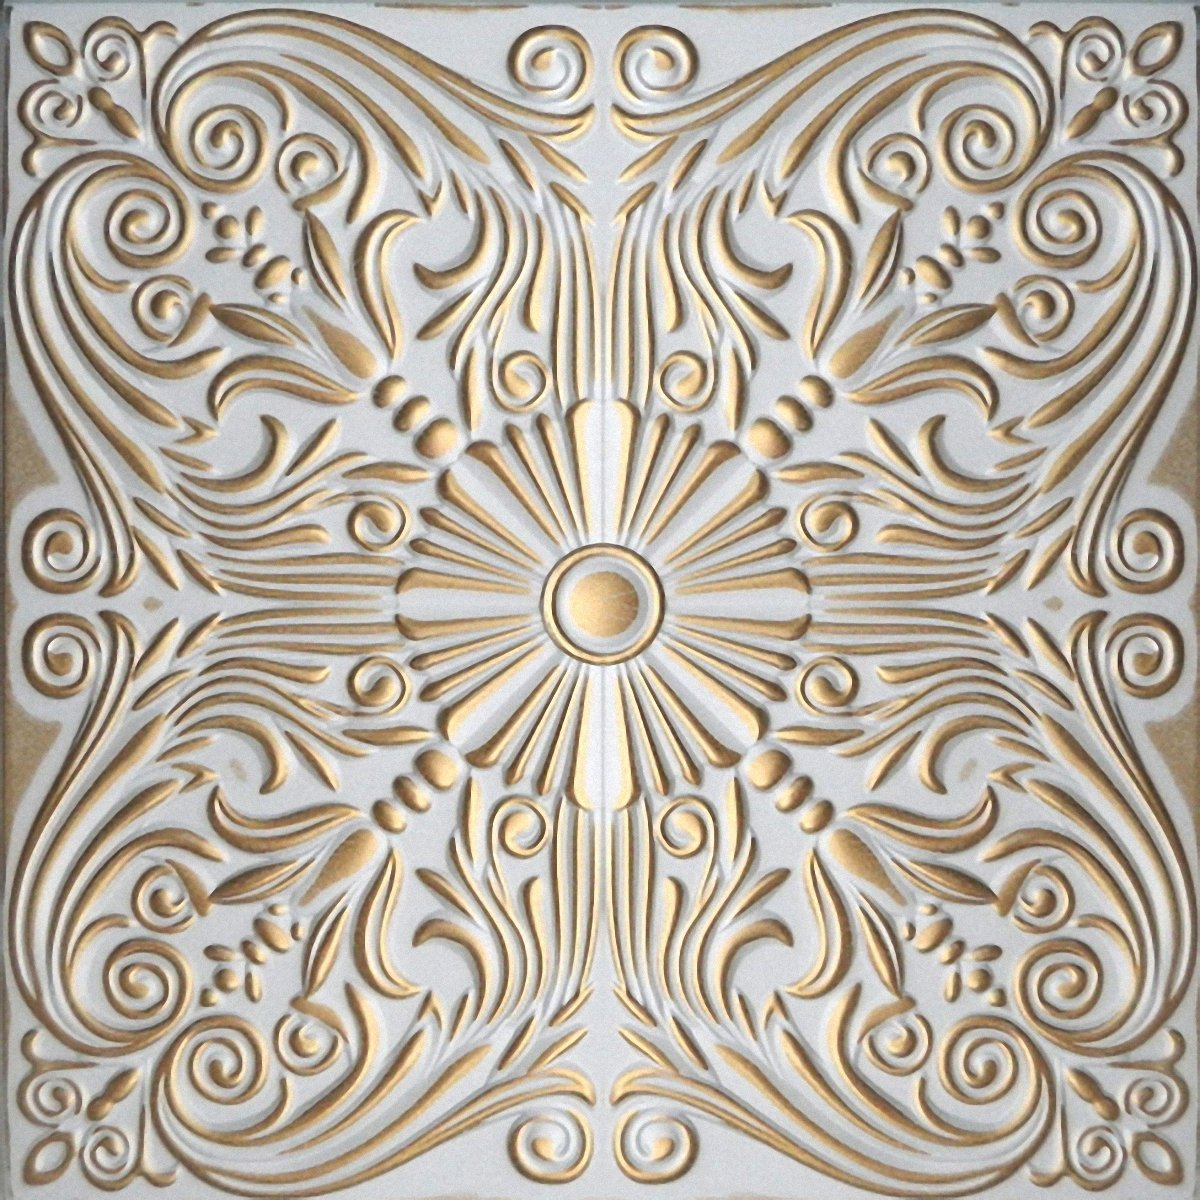 Hand Painted Polystyrene Foam Ceiling Tiles Retro 76 White - Gold (Pack 40 pcs / 10 sqm) Euro